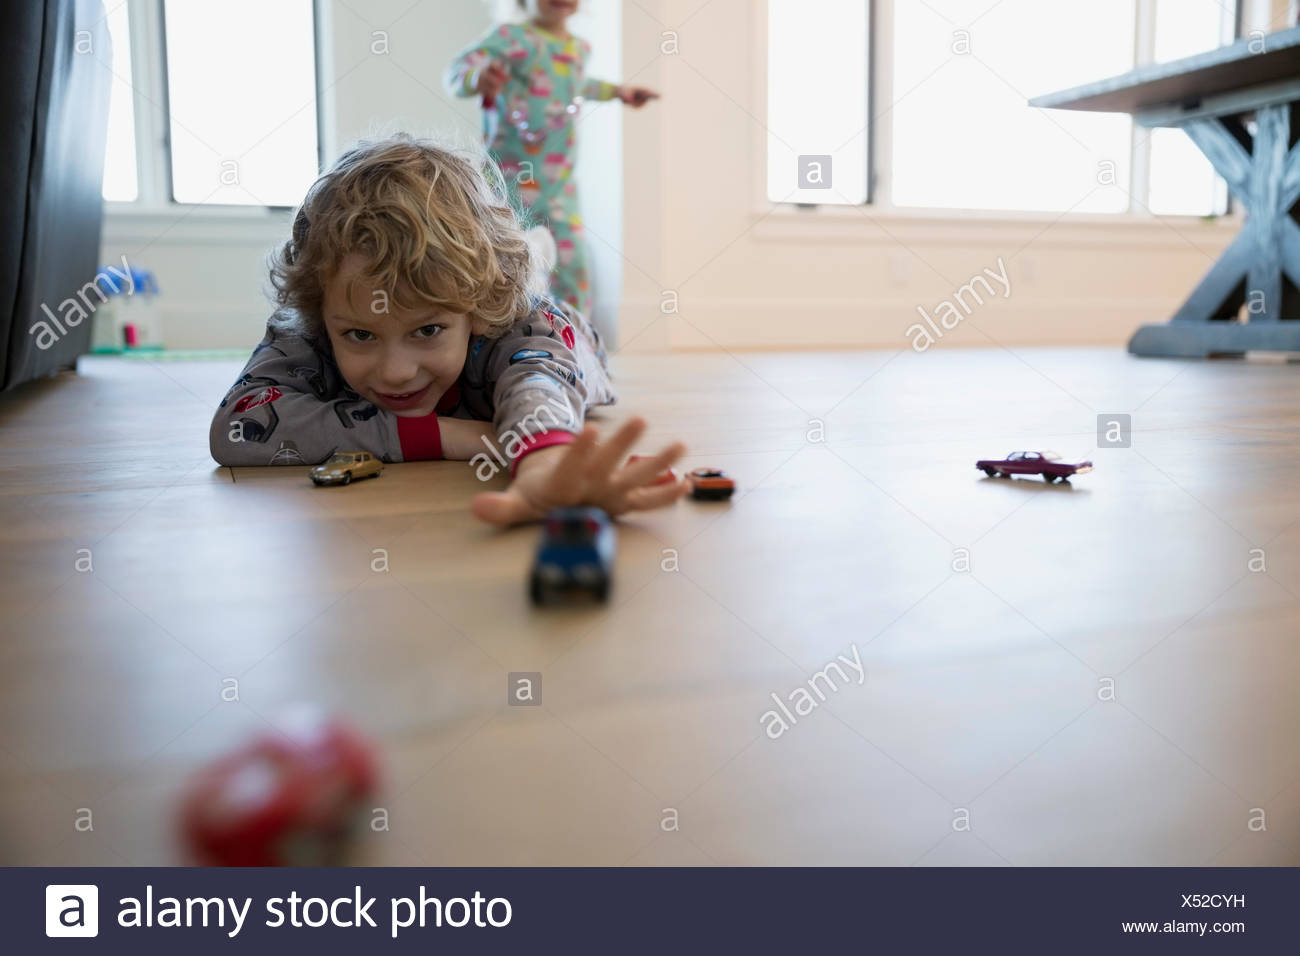 Boy playing with toy cars on floor - Stock Image